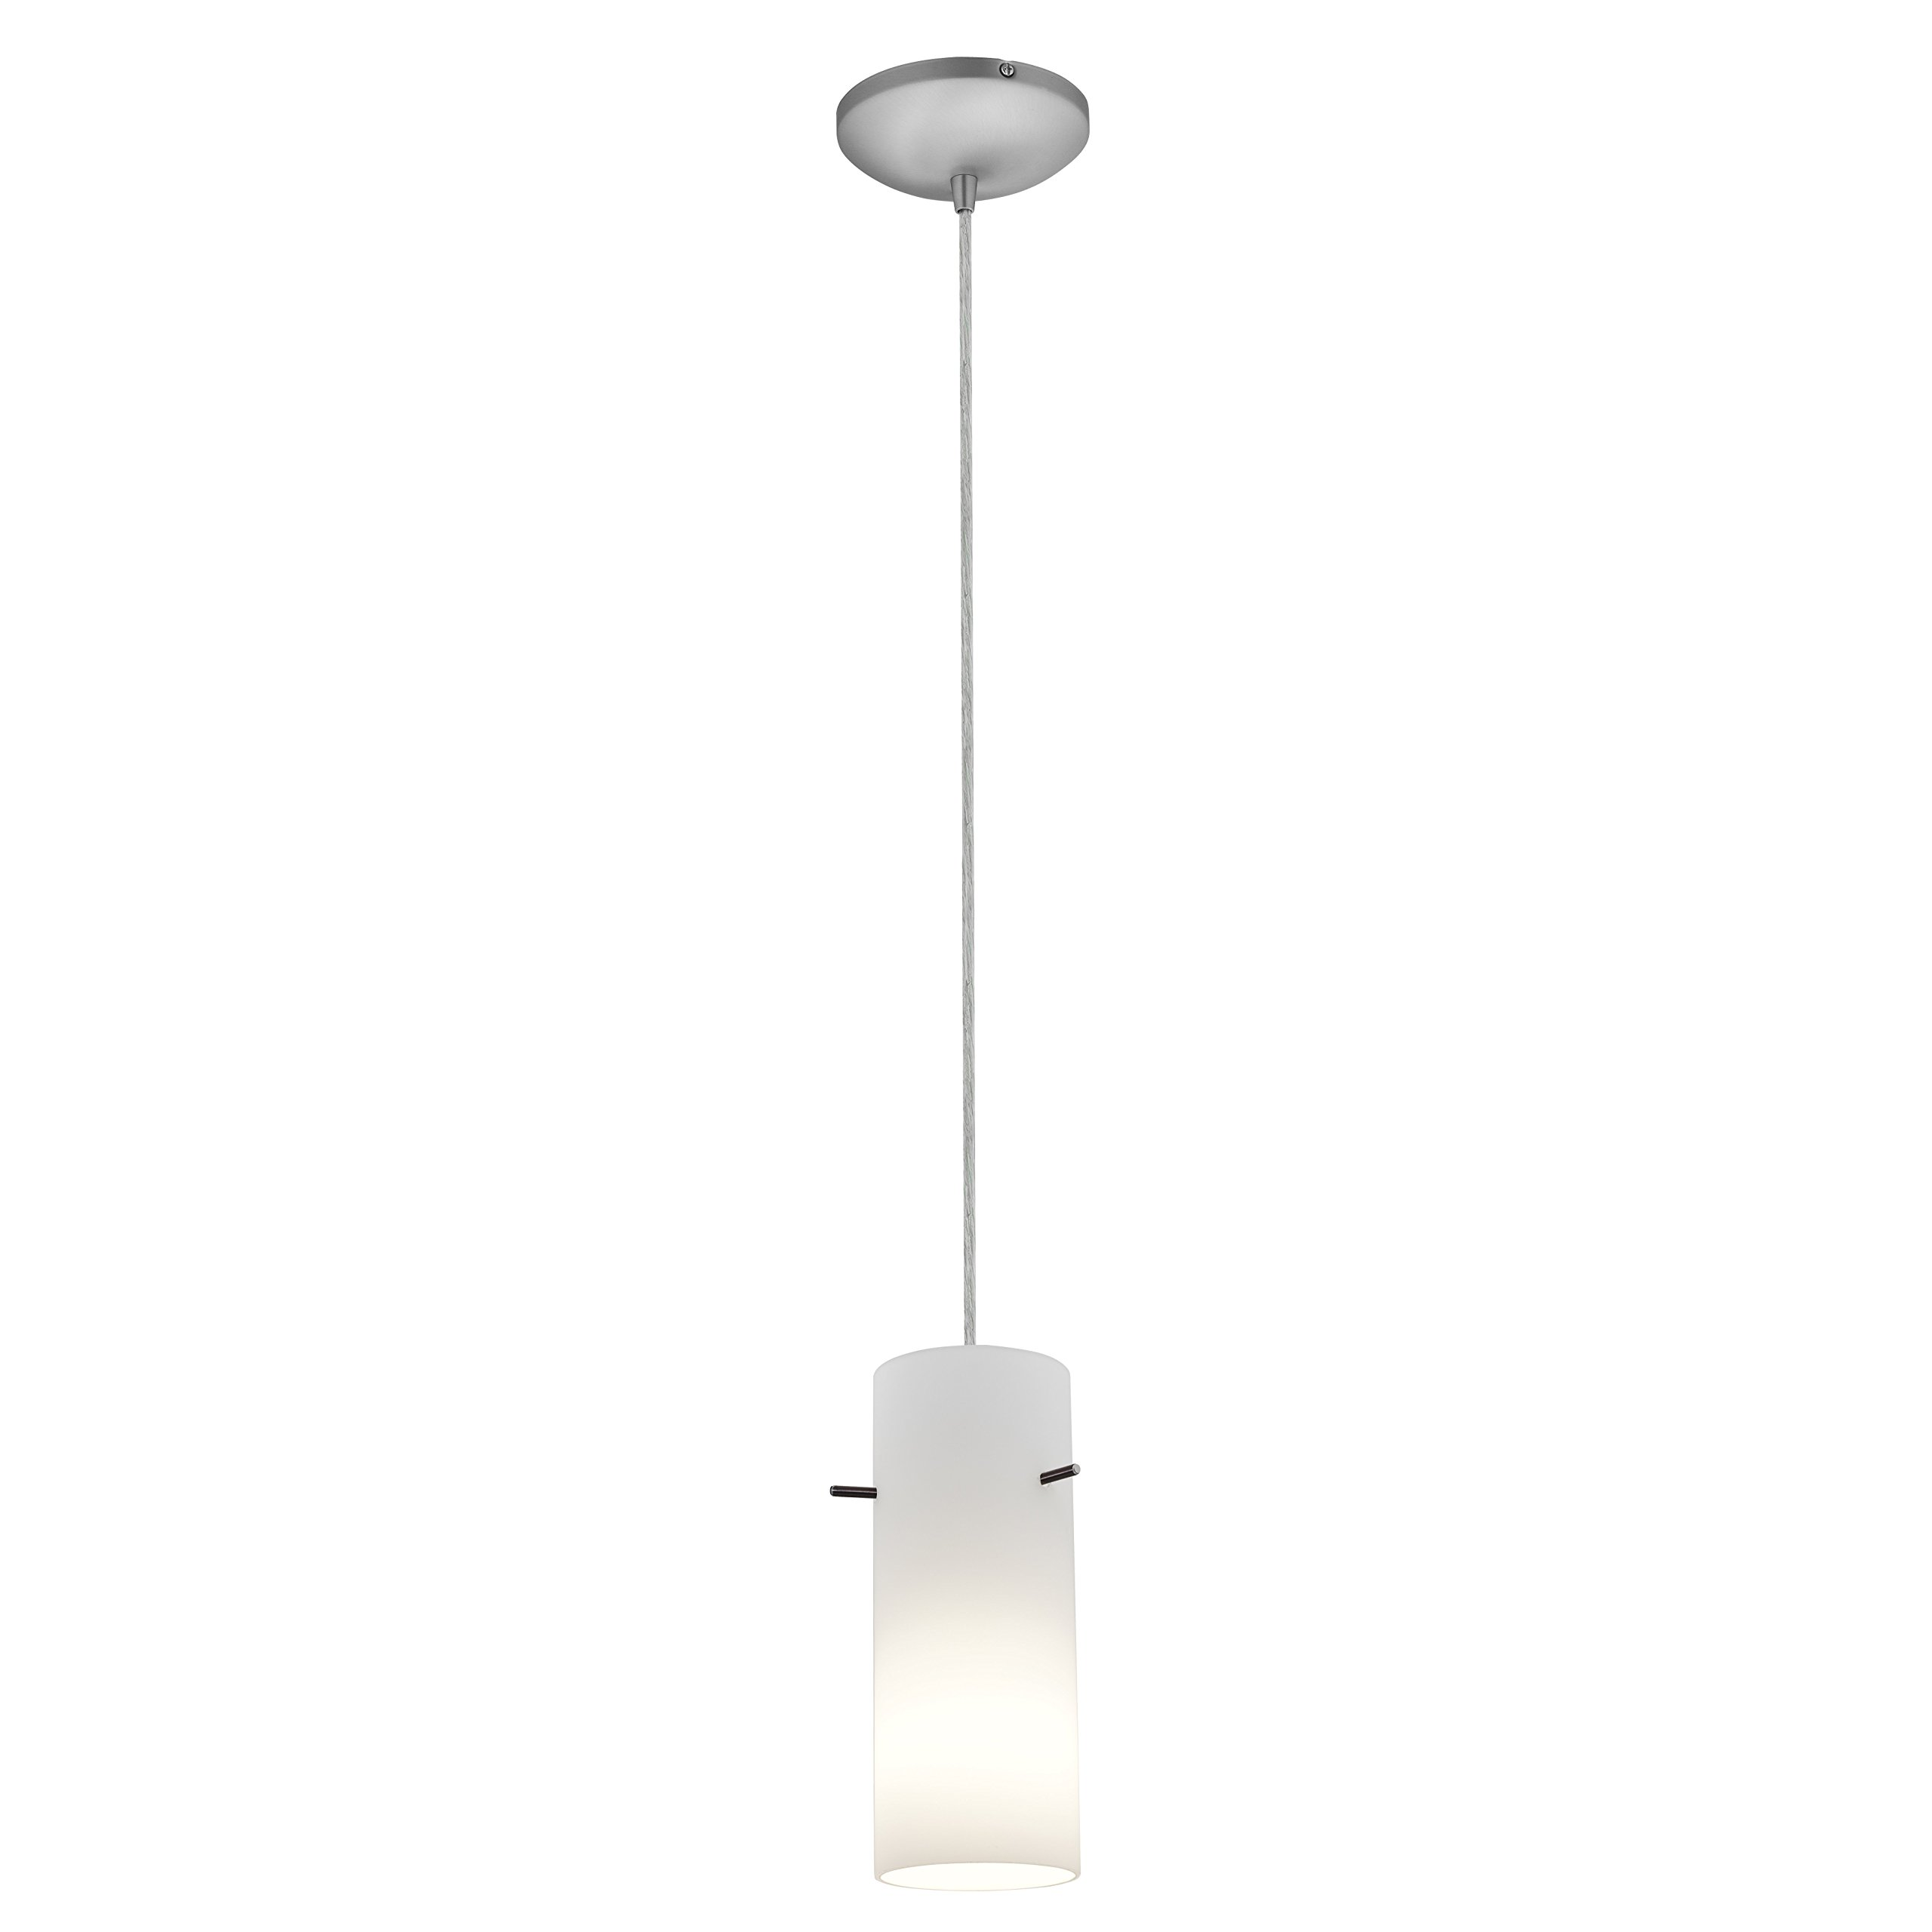 Cylinder - E26 LED Cord Pendant - Brushed Steel Finish - Opal Glass Shade